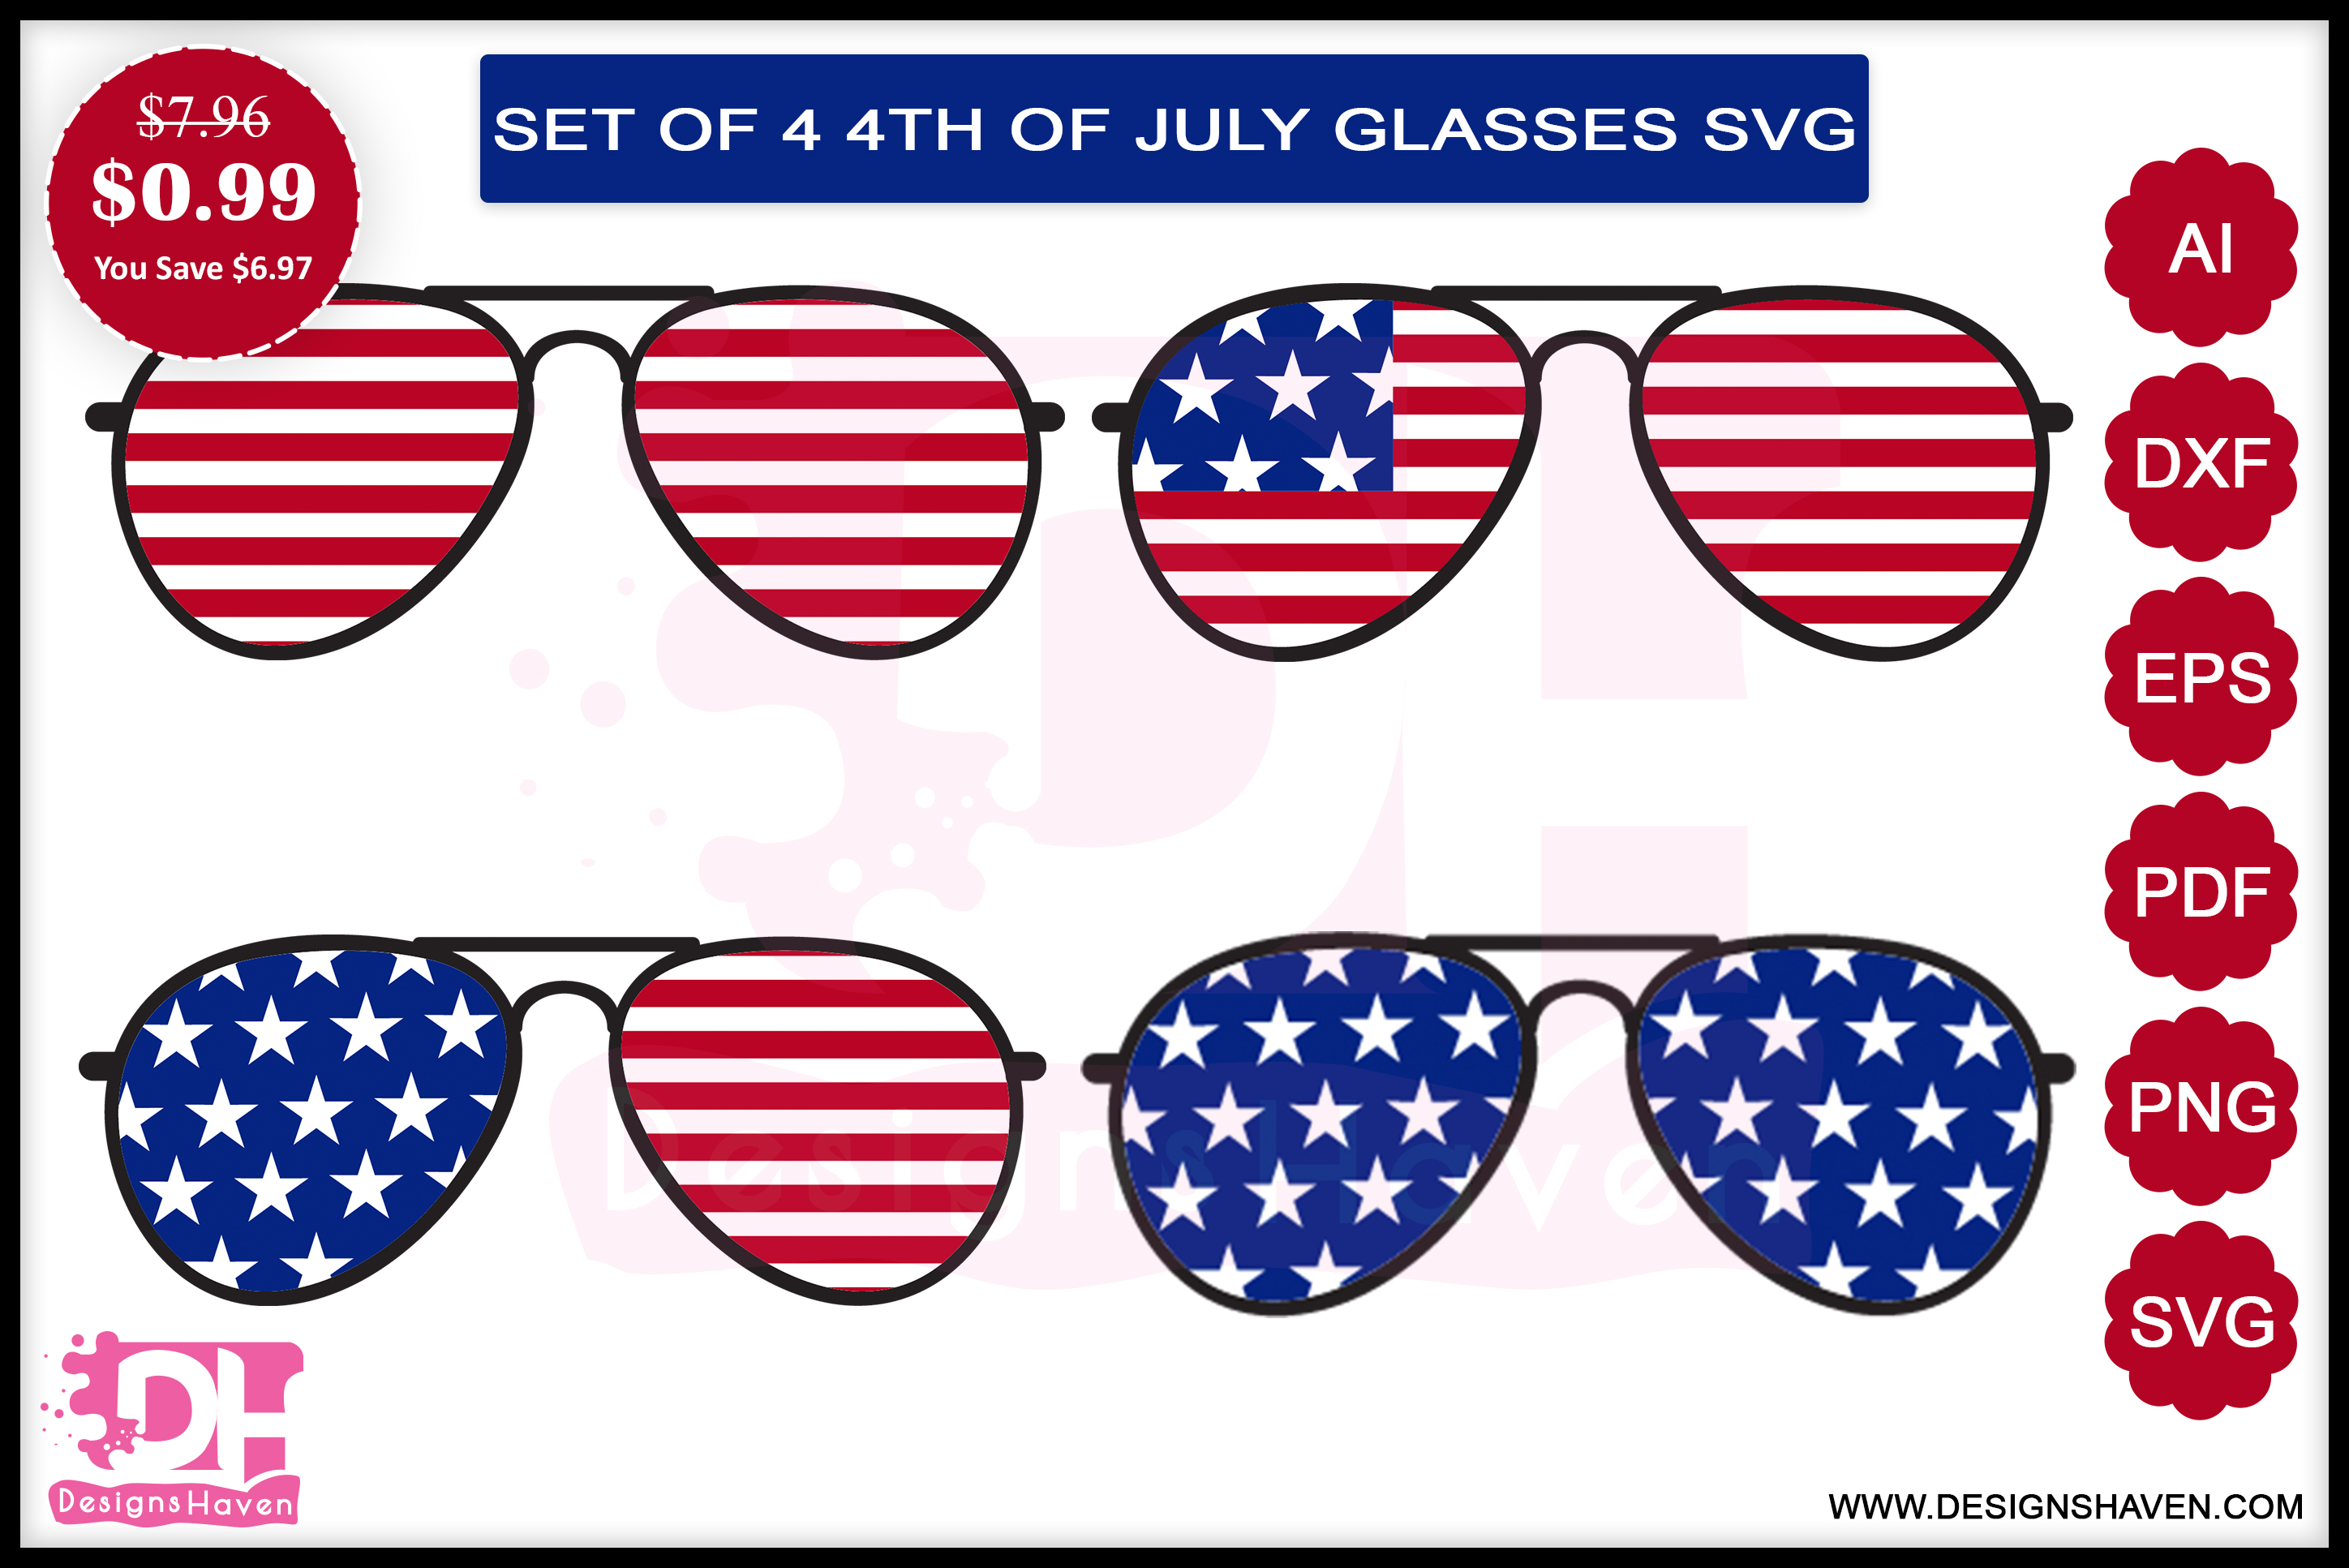 4th July Glasses Svg, Eps, Png, Dxf, Pdf.